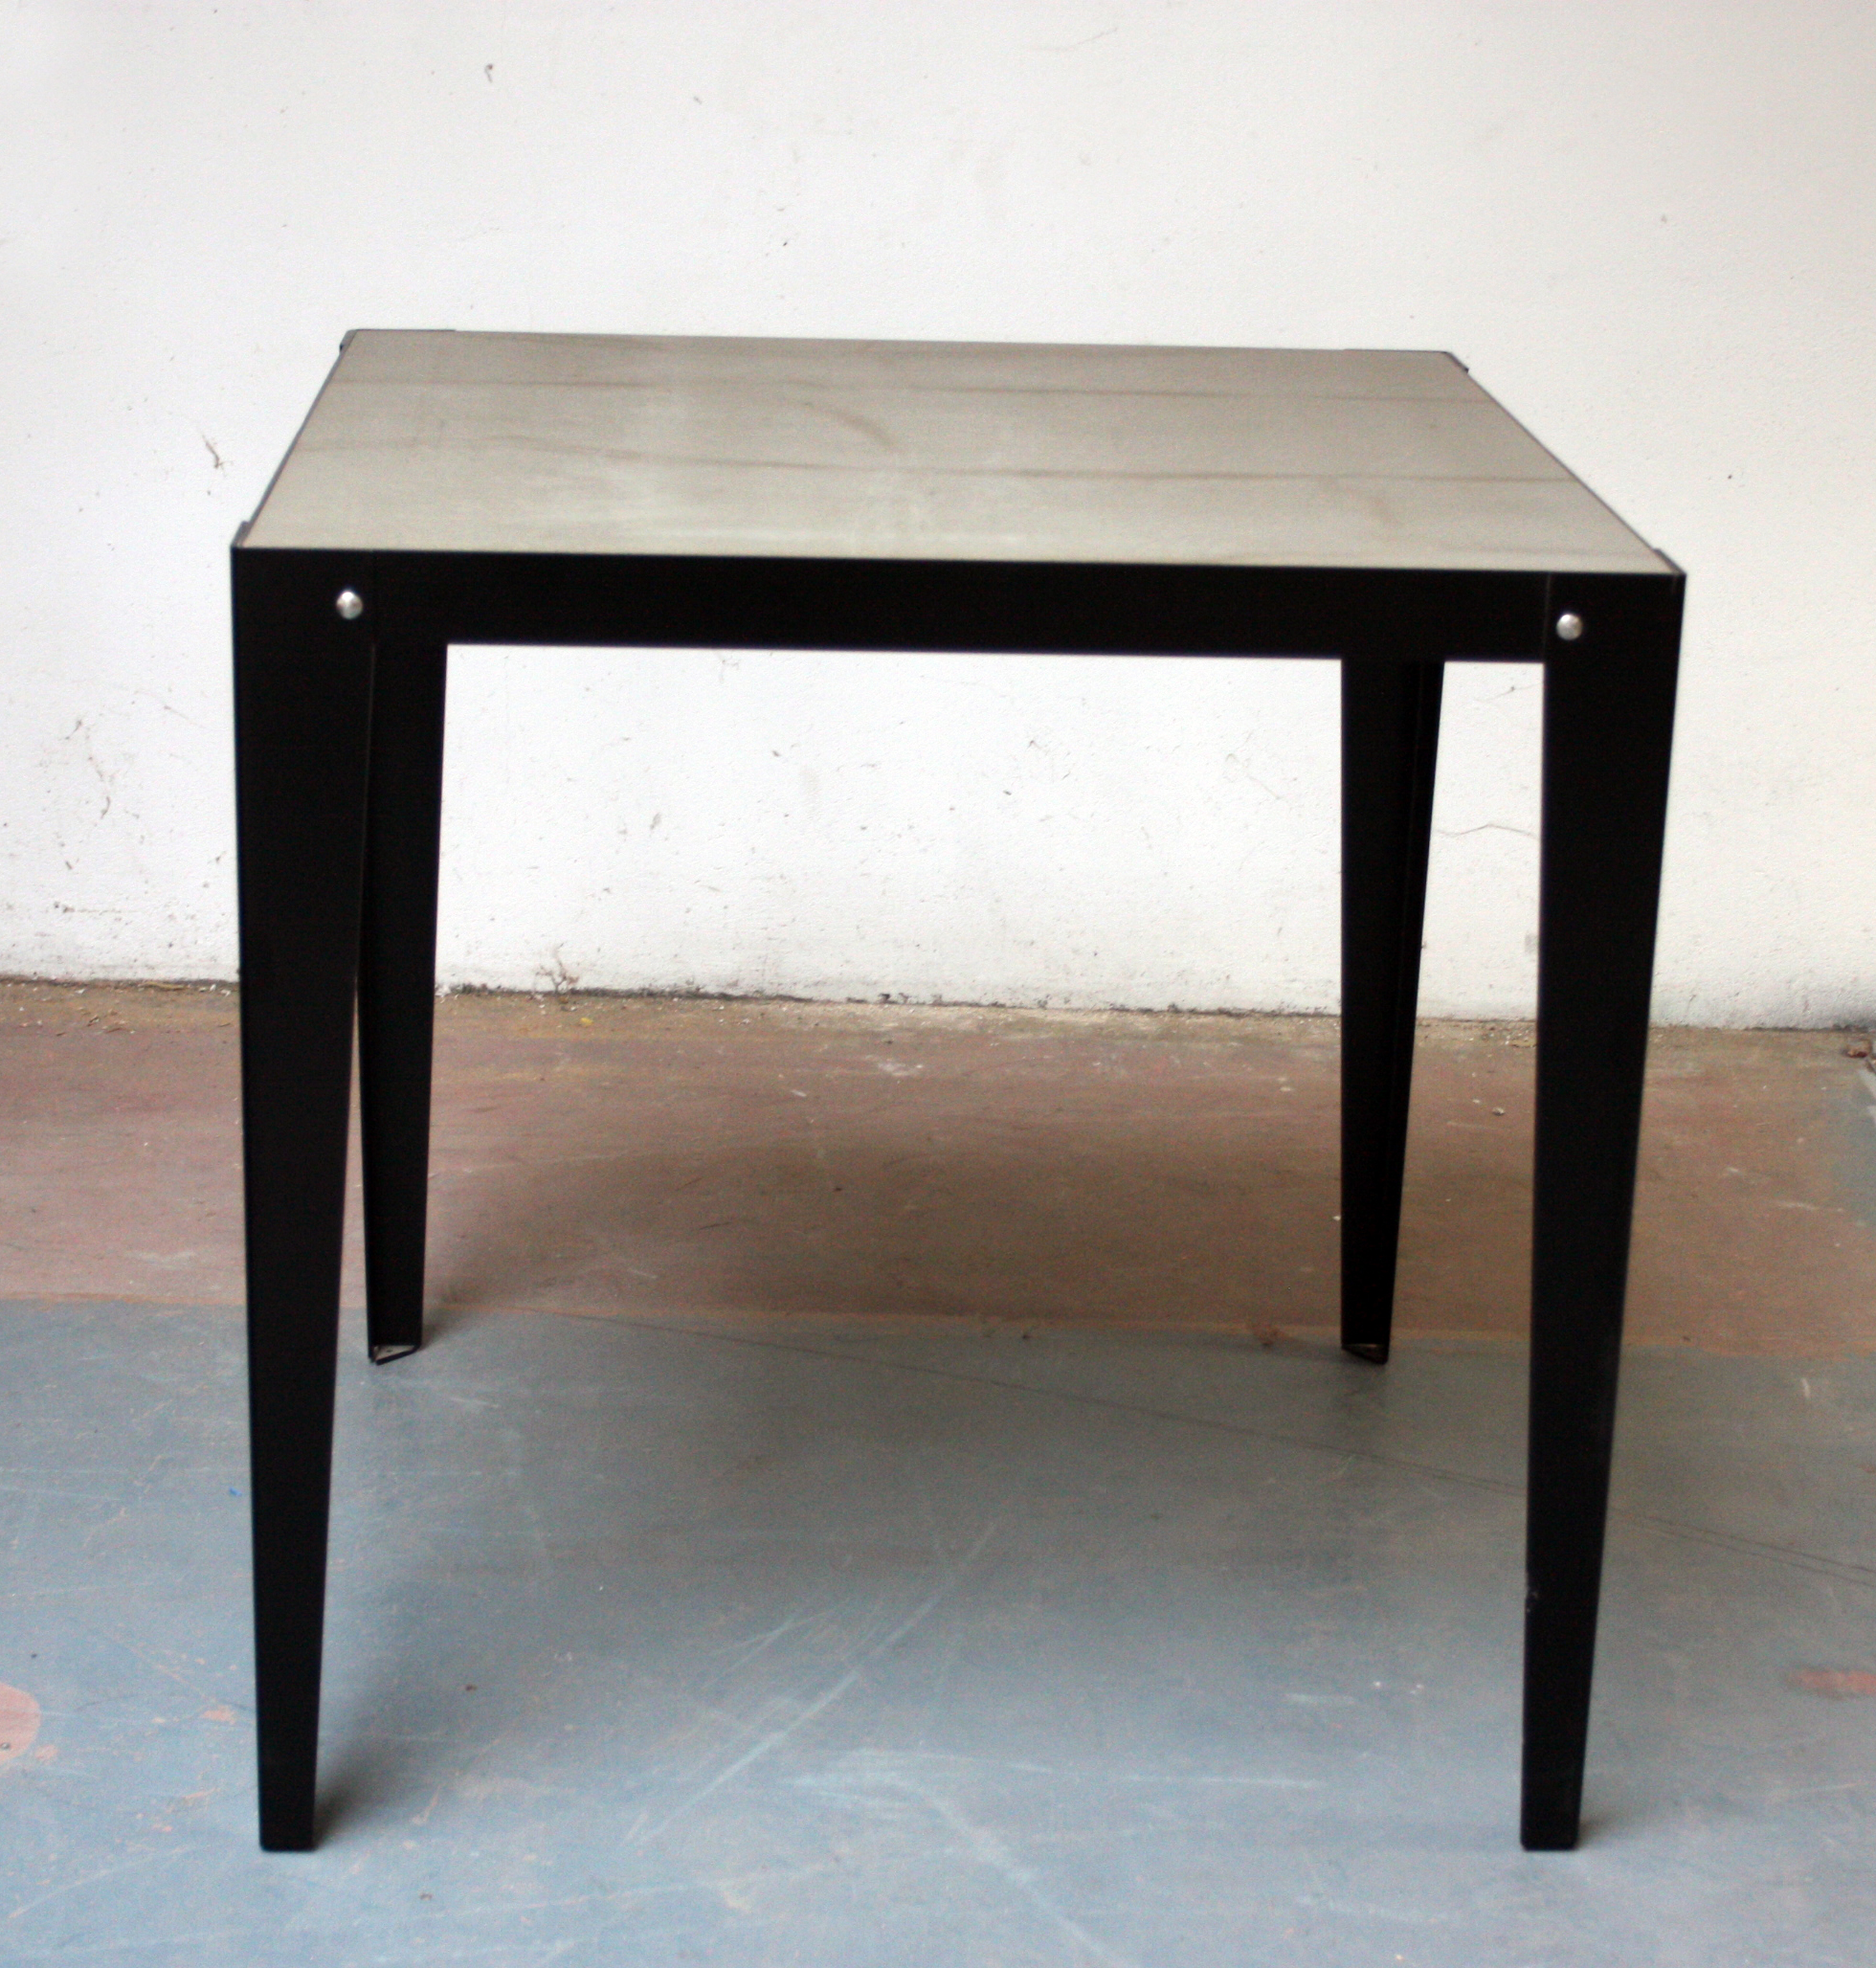 Table hauteur 90 cm for Hauteur table cuisine